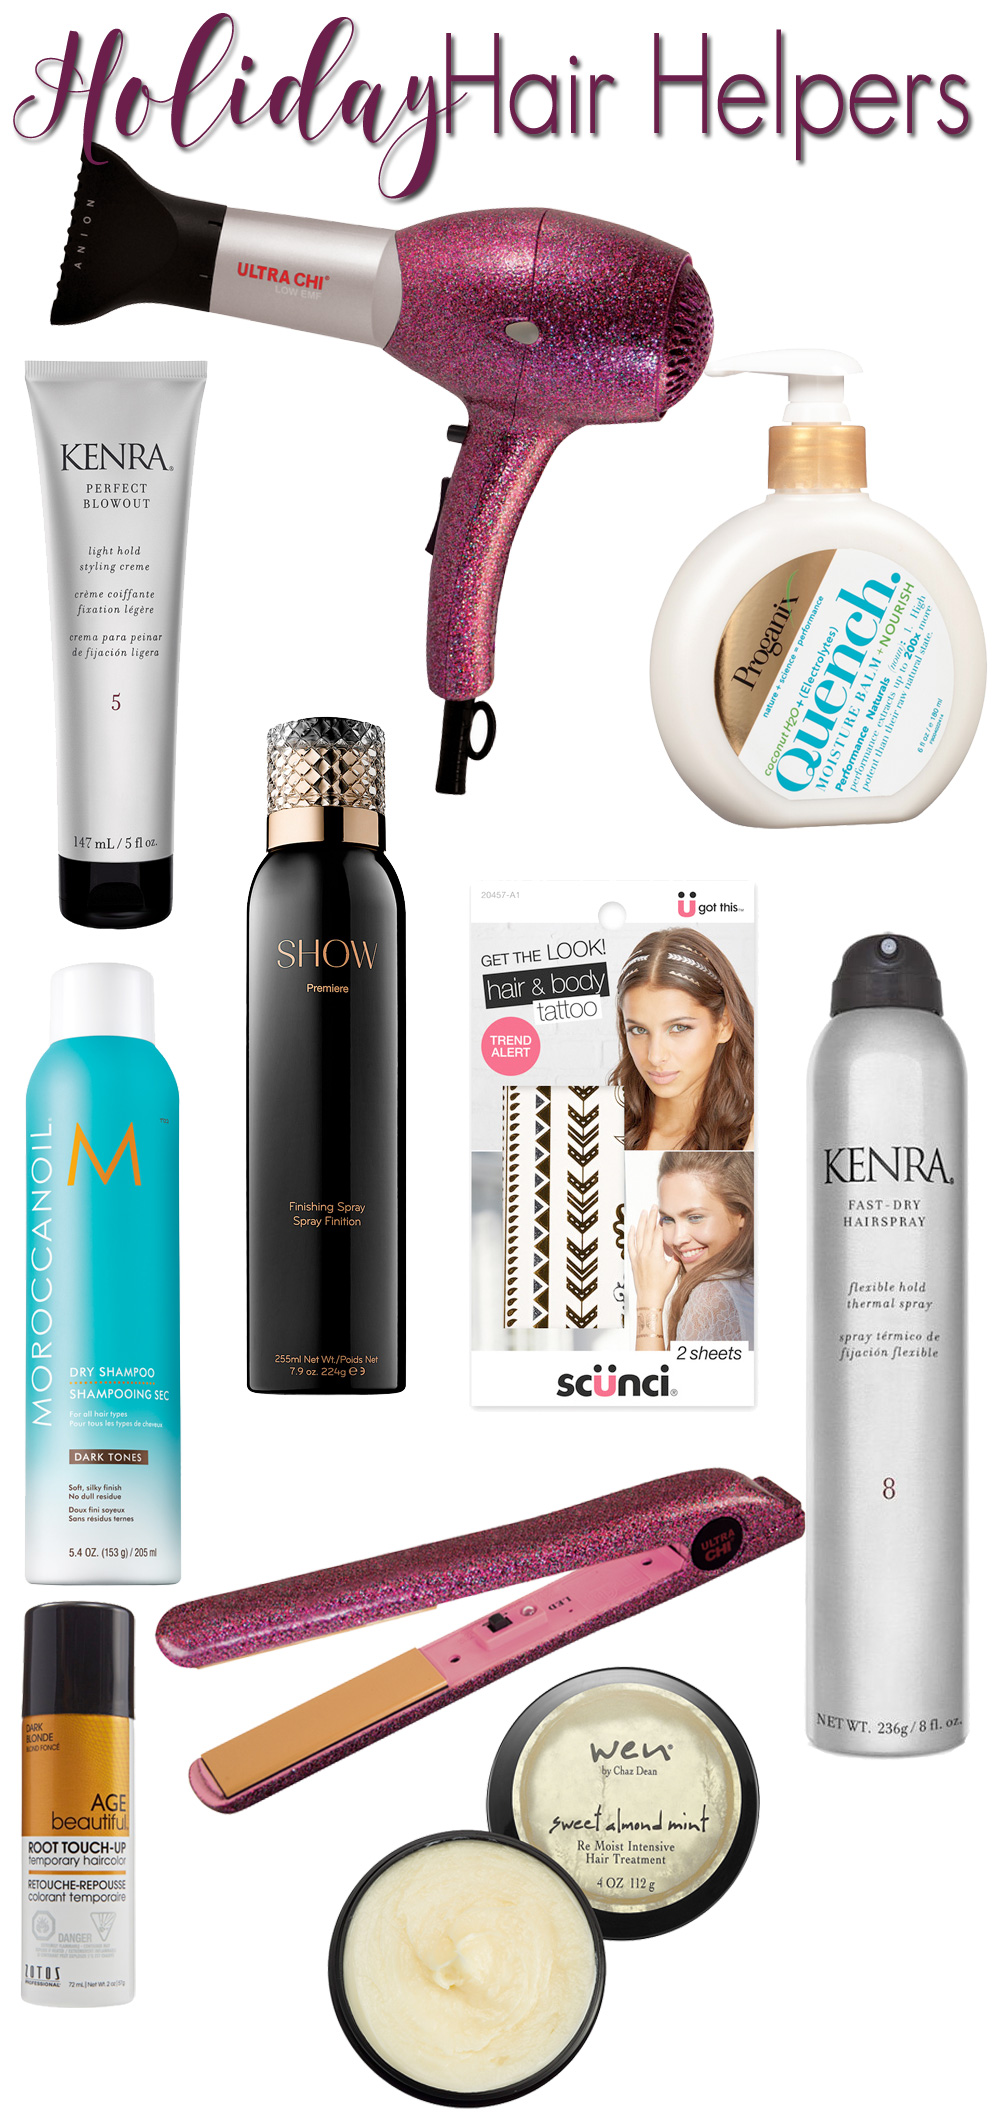 10 EASY Ways to Get Your Hair Holiday Ready!